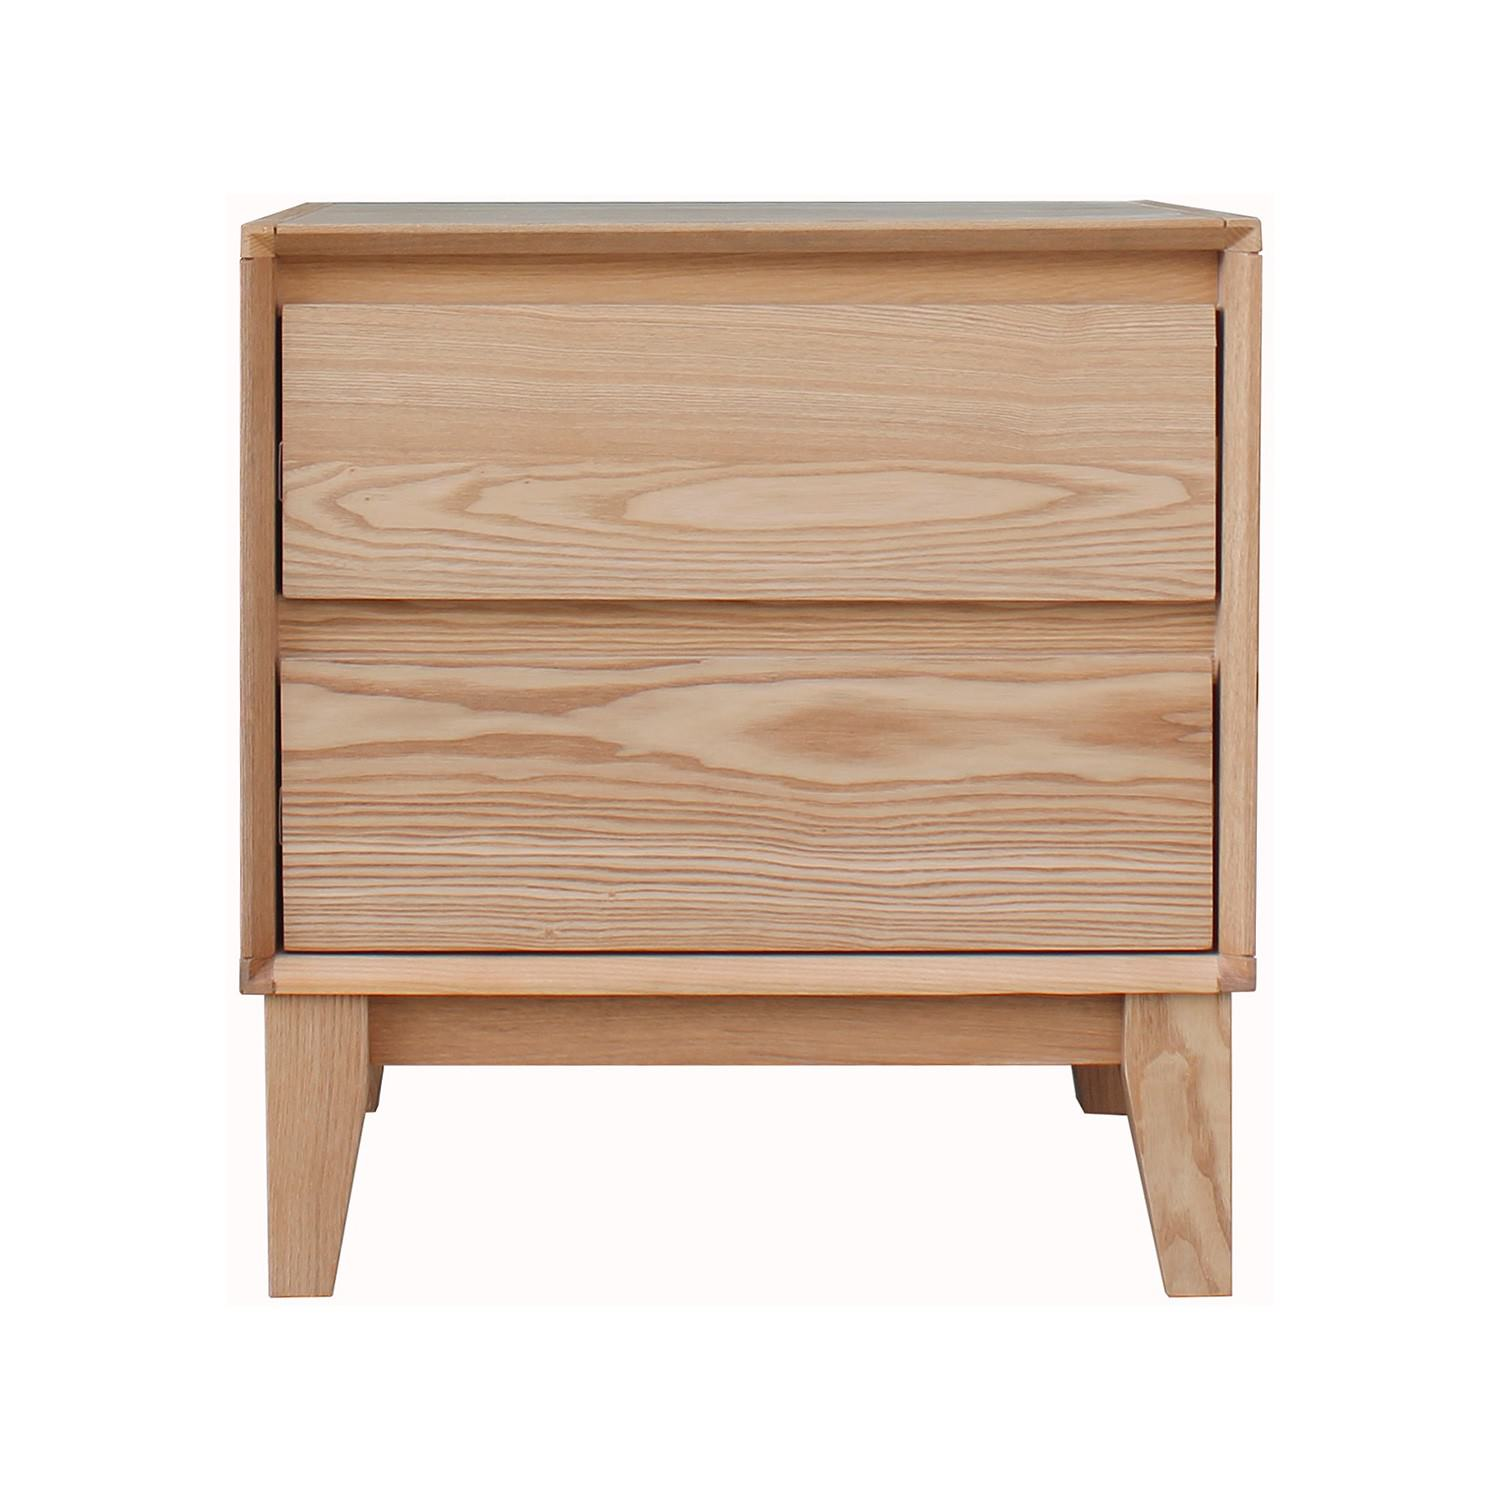 Carnfney Timber Bedside Table